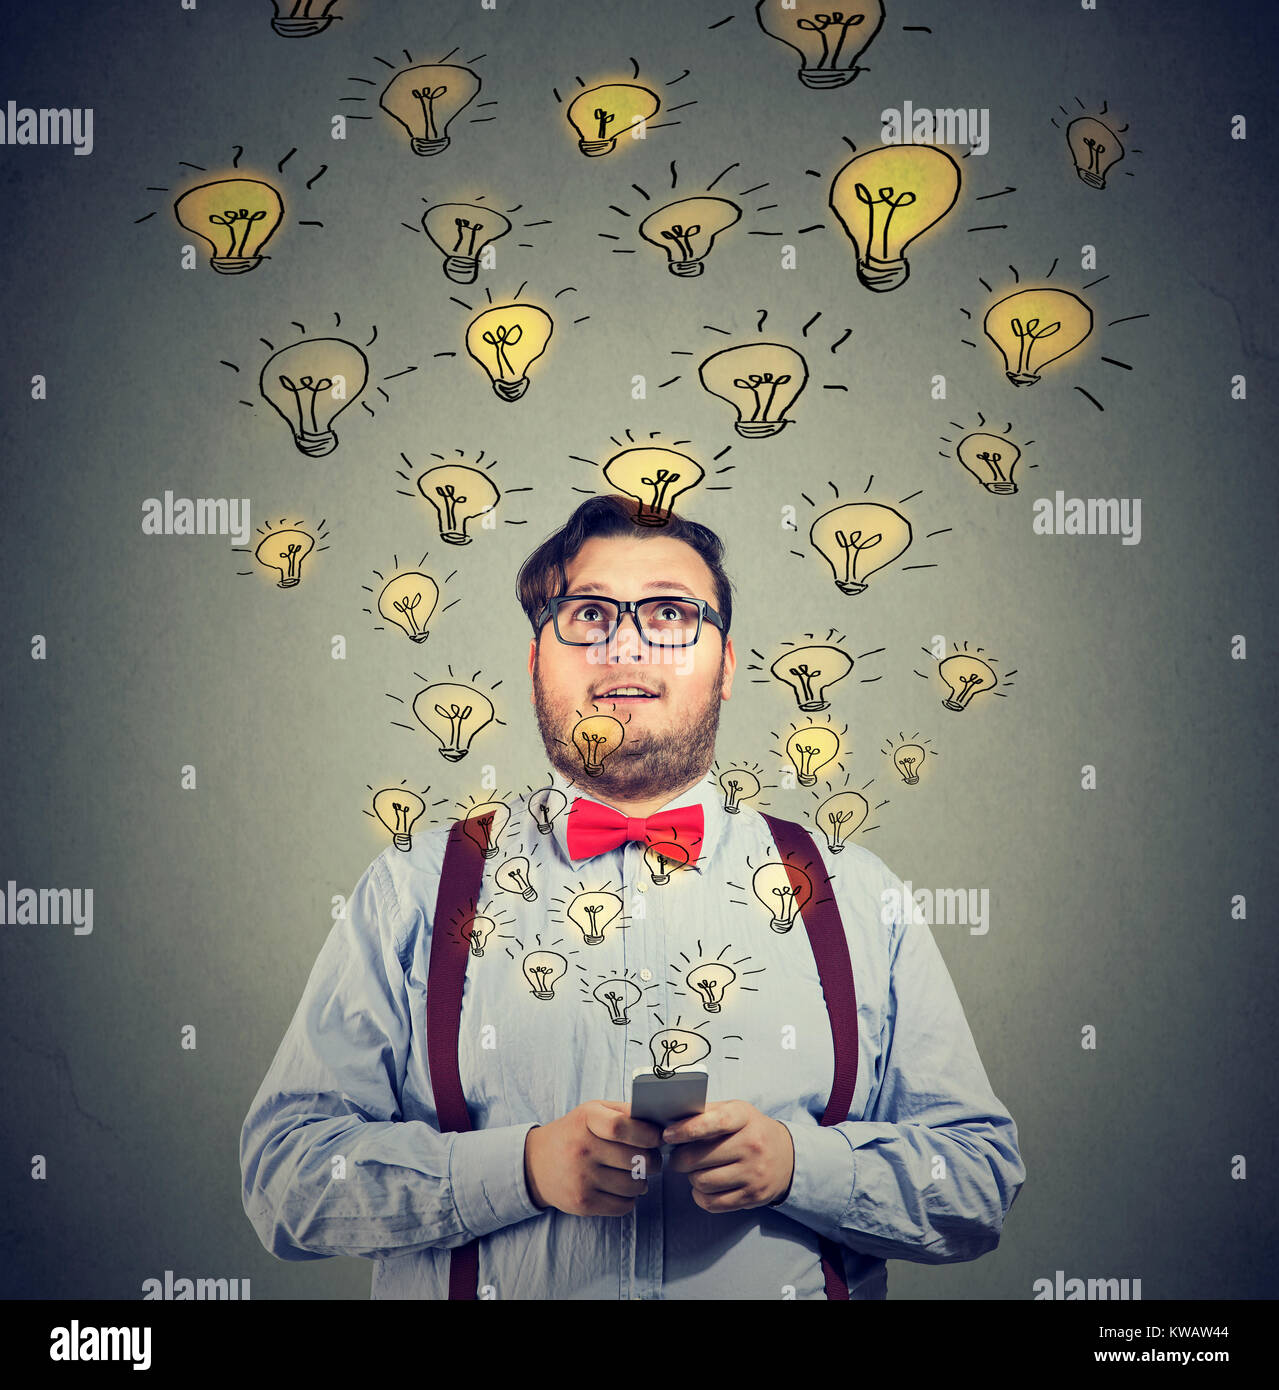 Young excited man holding smartphone sharing with bright ideas looking content. - Stock Image